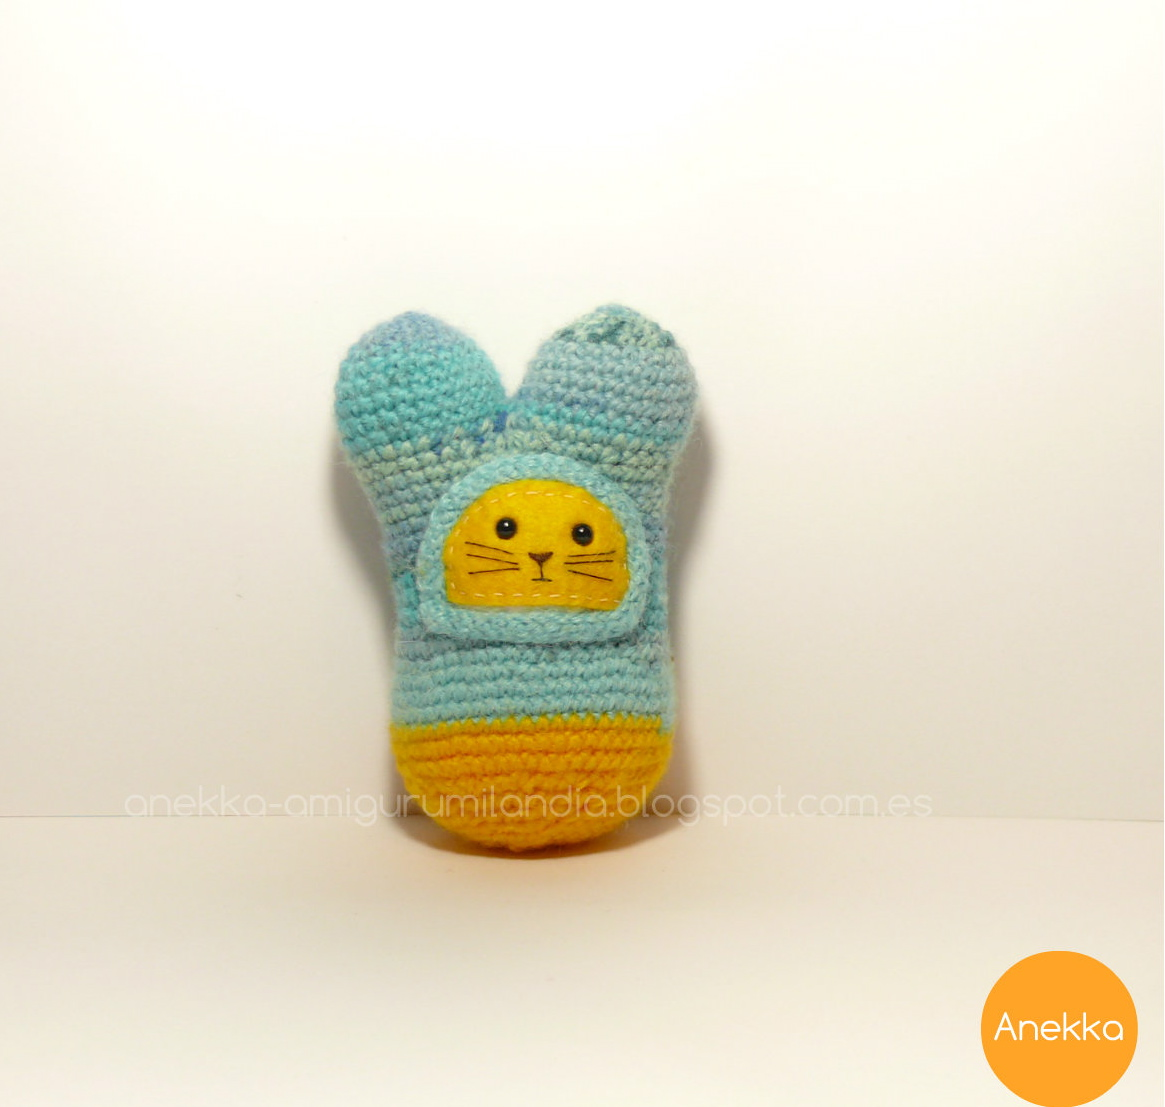 cute and sweet amigurumi anekka handmade